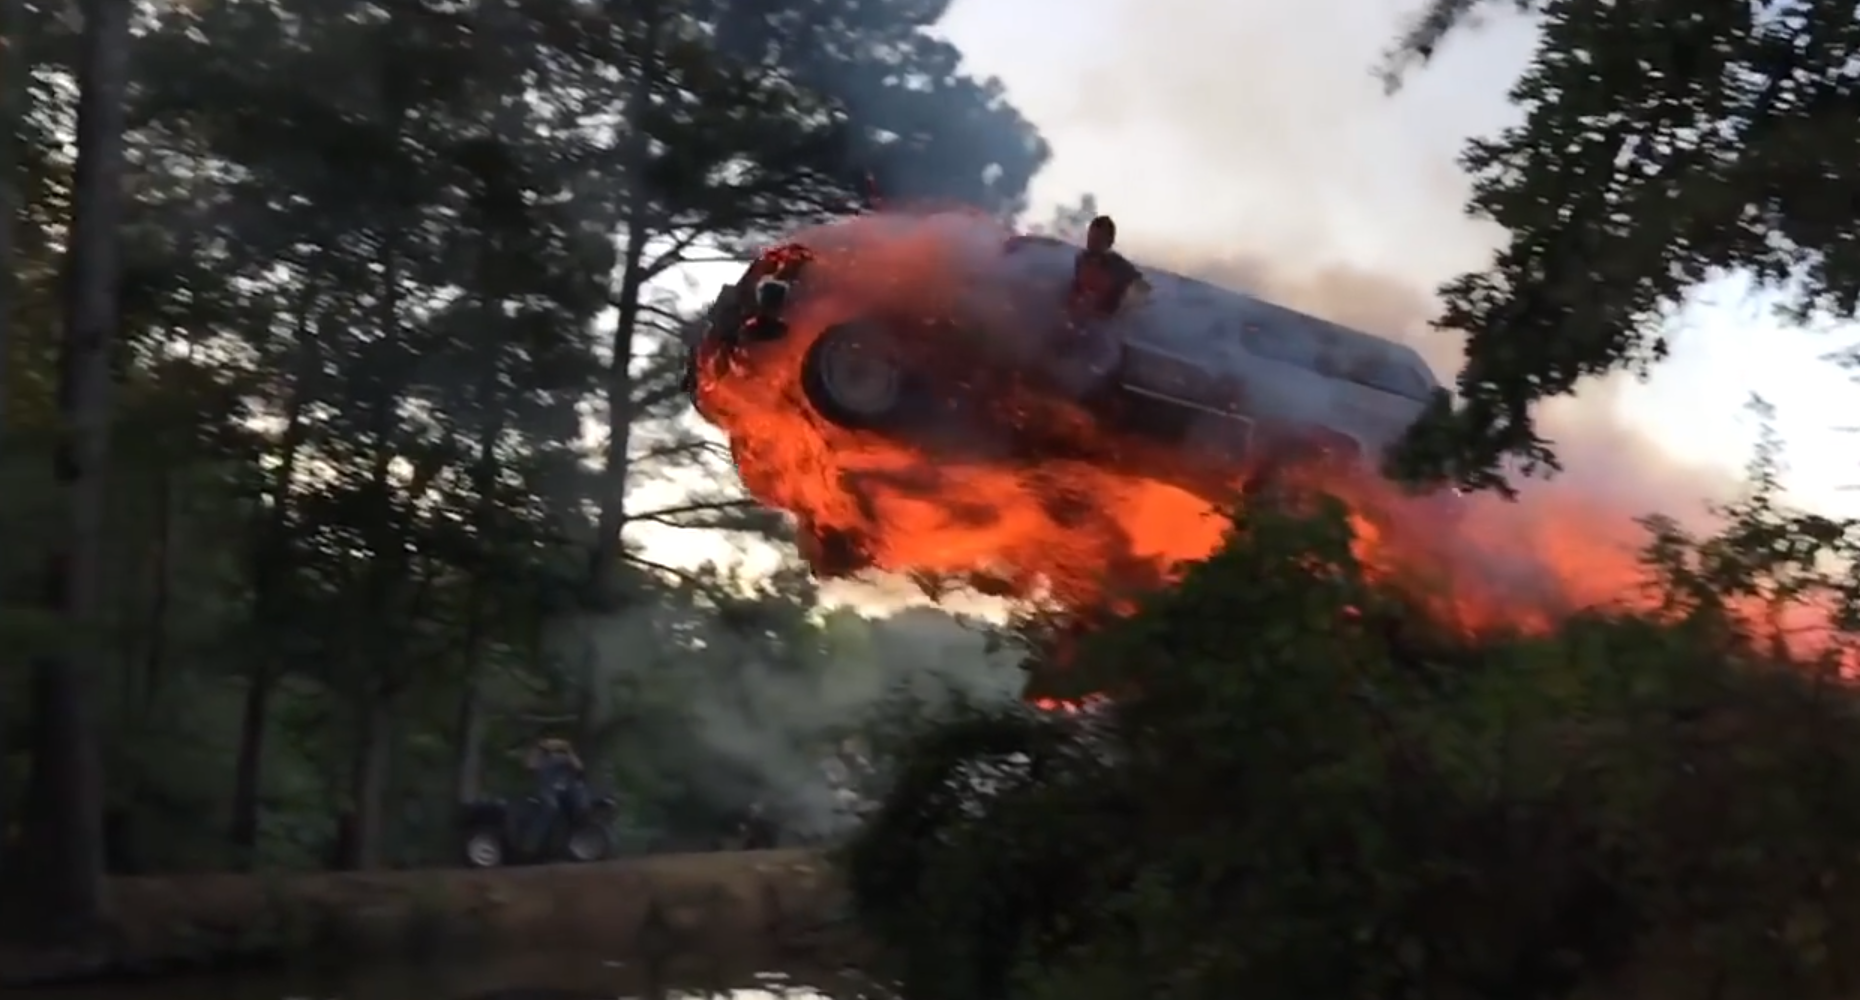 Mad Americans Set Fire To Car, Drive Off Big Ramp